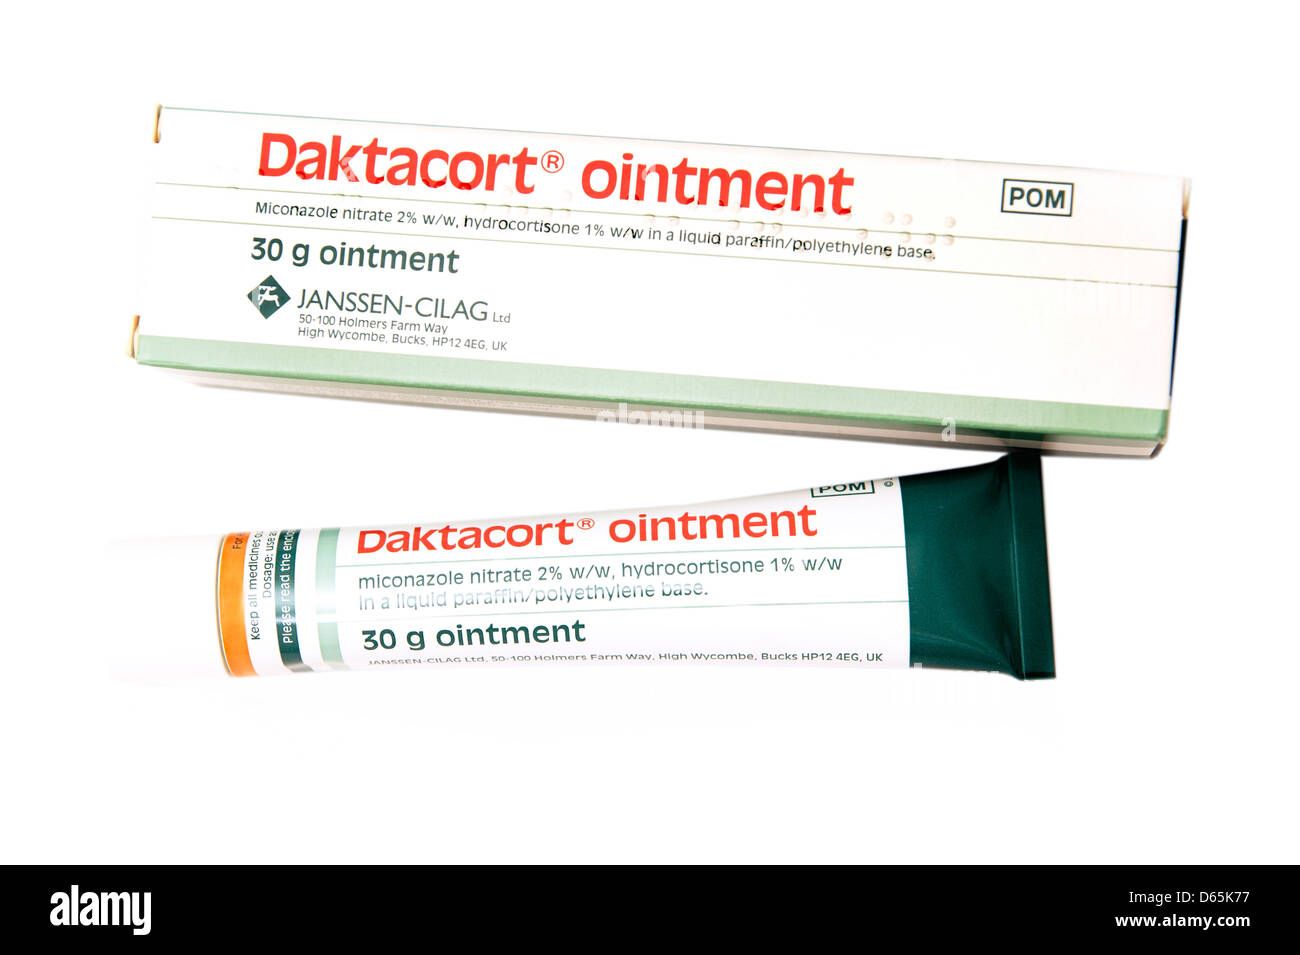 Daktacort ointment (miconazole nitrate) hydrocortisone steroid cream to treat inflamed conditions eczema dermatitis Stock Photo